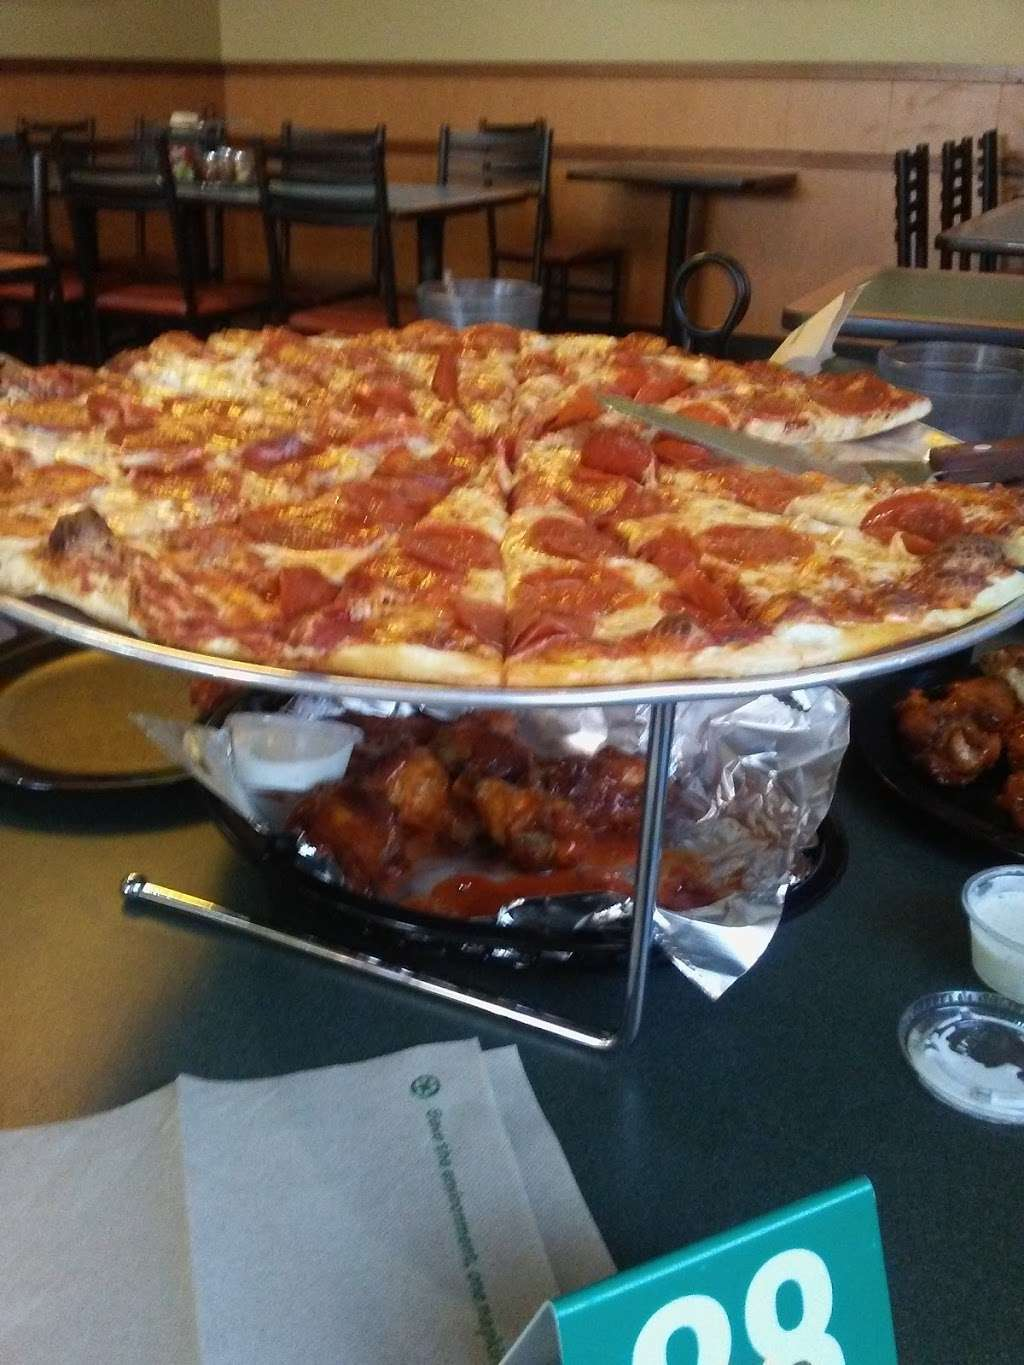 Round Table Pizza - meal delivery  | Photo 9 of 10 | Address: 2270 S Azusa Ave D, West Covina, CA 91792, USA | Phone: (626) 839-2900